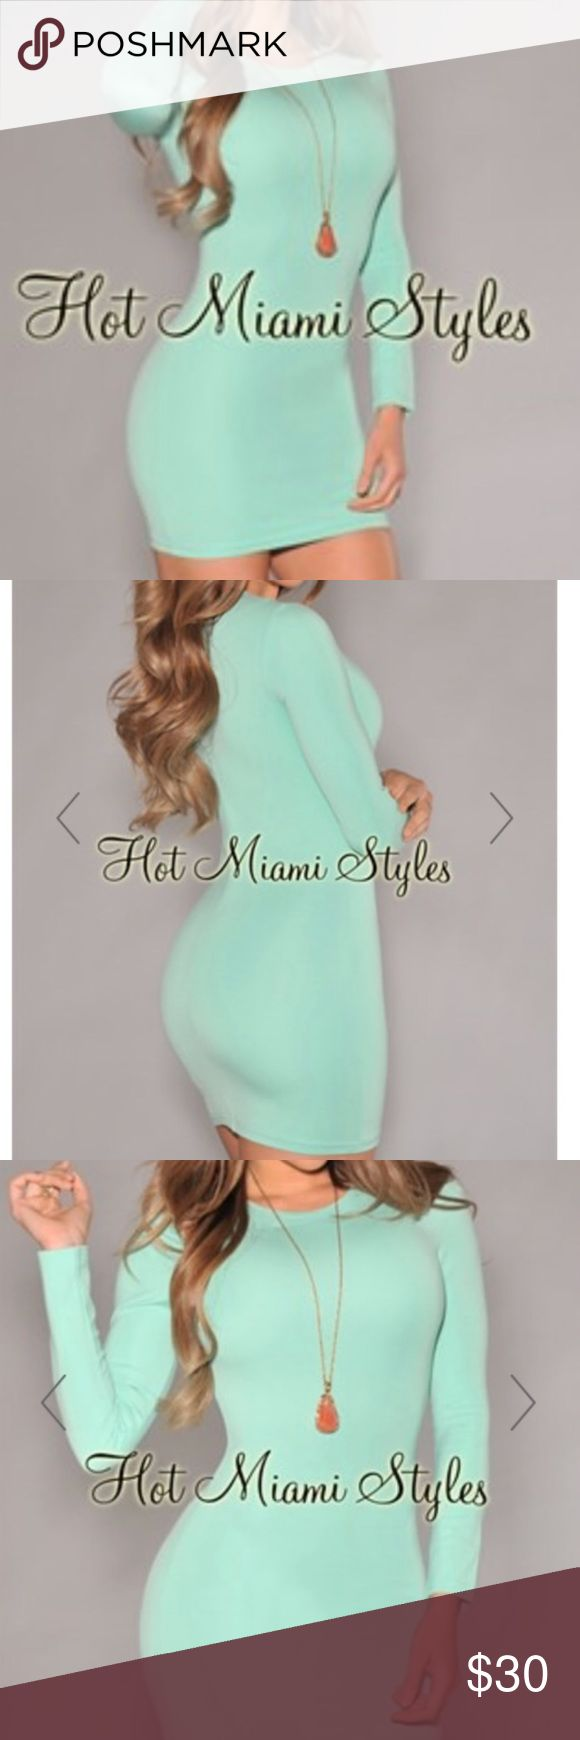 Hot Miami Styles NWOT Bought this on Poshmark. Just a little too tight for me so didn't wear it. NWOT. Great condition and kept in a smoke/pet free home. Similar to Bebe, bcbg, guess, Marciano, etc. hot miami styles Dresses